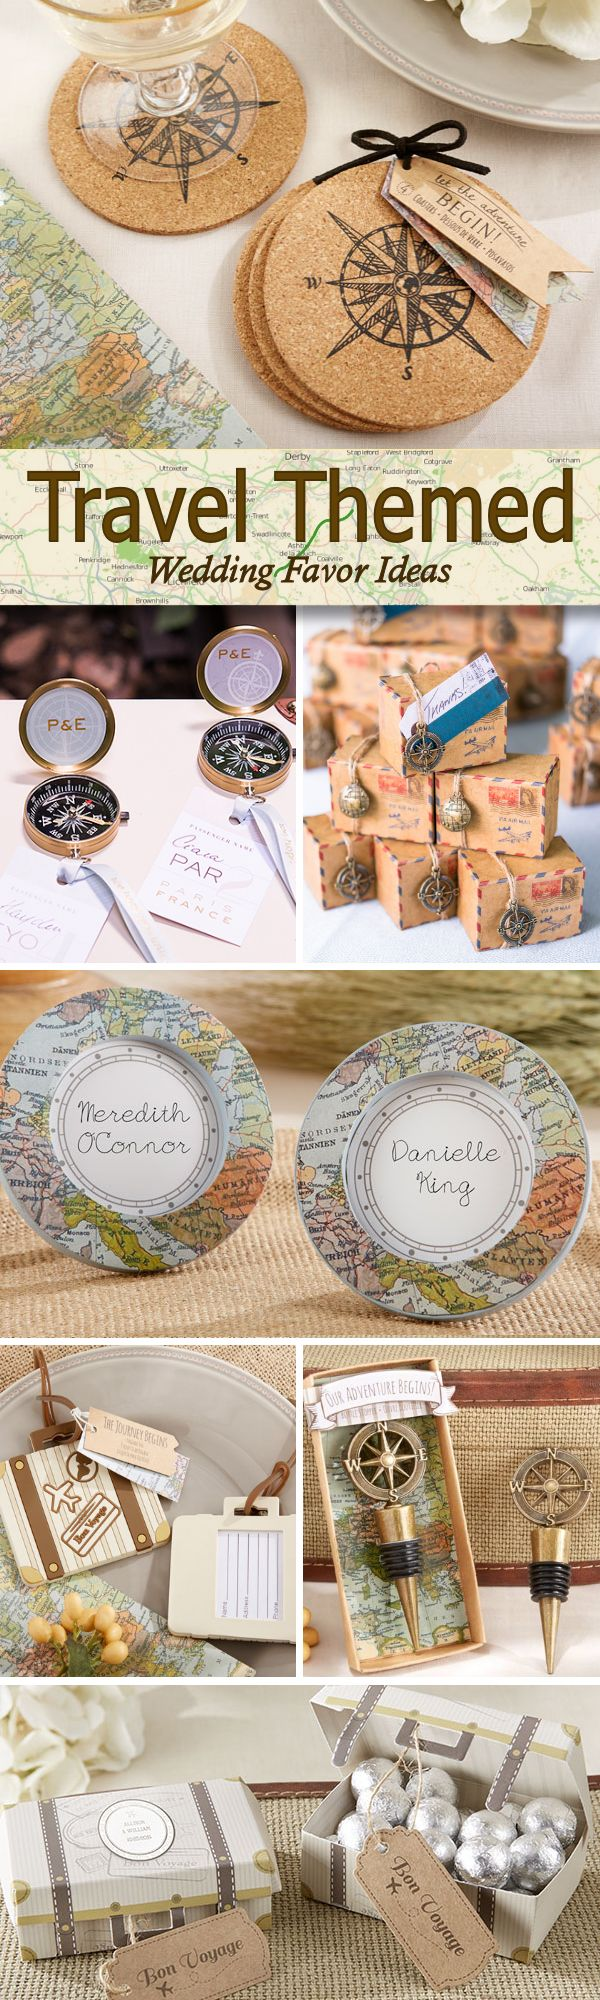 Having a wanderlust or travel inspired wedding?  Check out these 50 Fun Travel Themed Wedding Favor Ideas